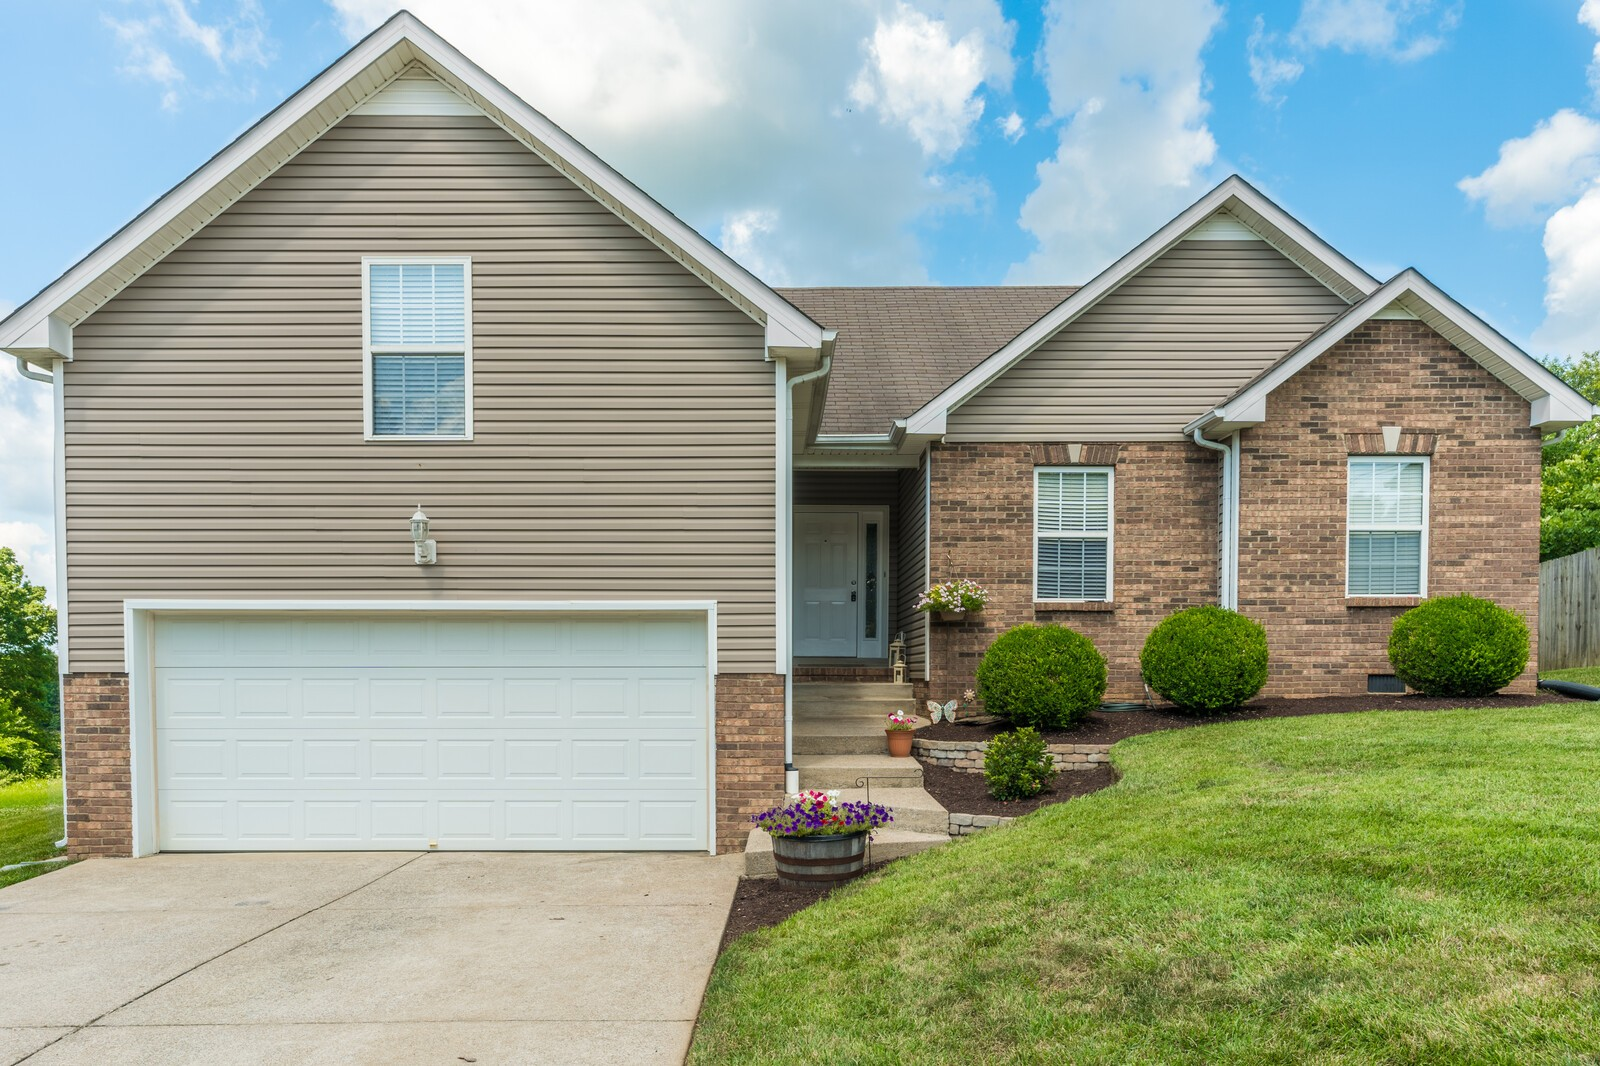 623 Chestnut Ct Property Photo - Springfield, TN real estate listing